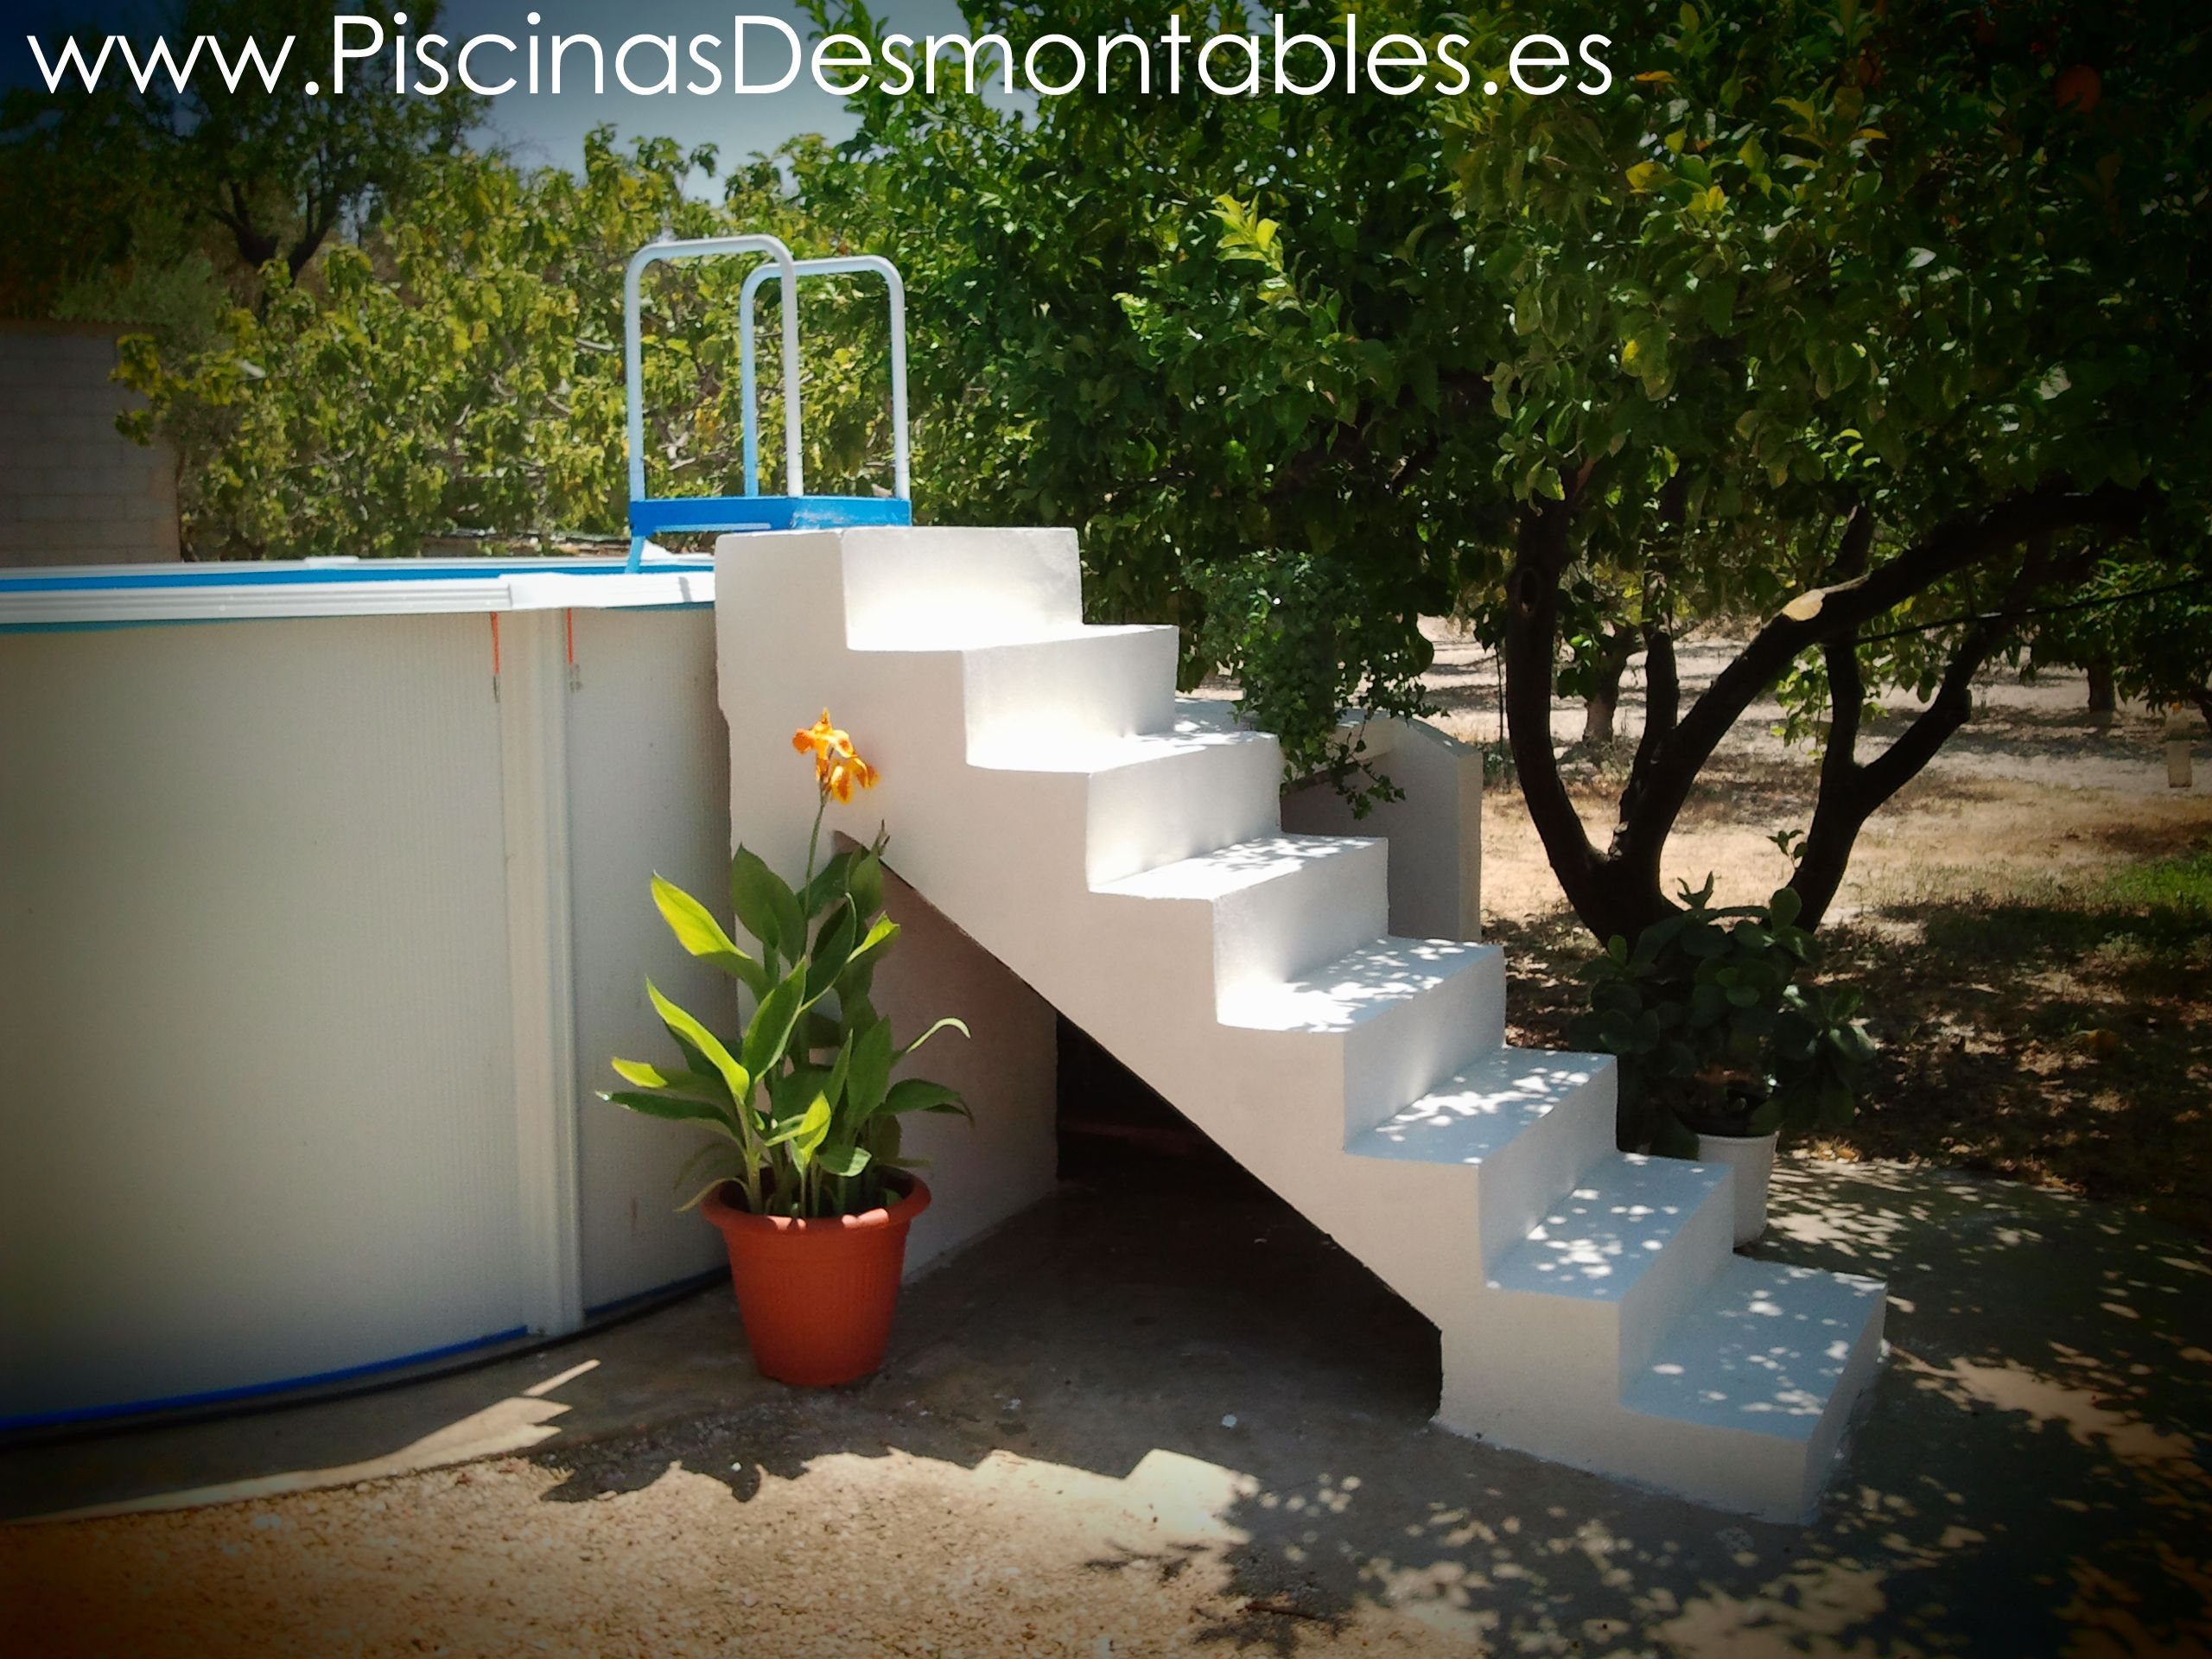 Piscinas Desmontables Madrid Escalera De Obra Adaptada A Una Piscina Desmontable Toi Ideas